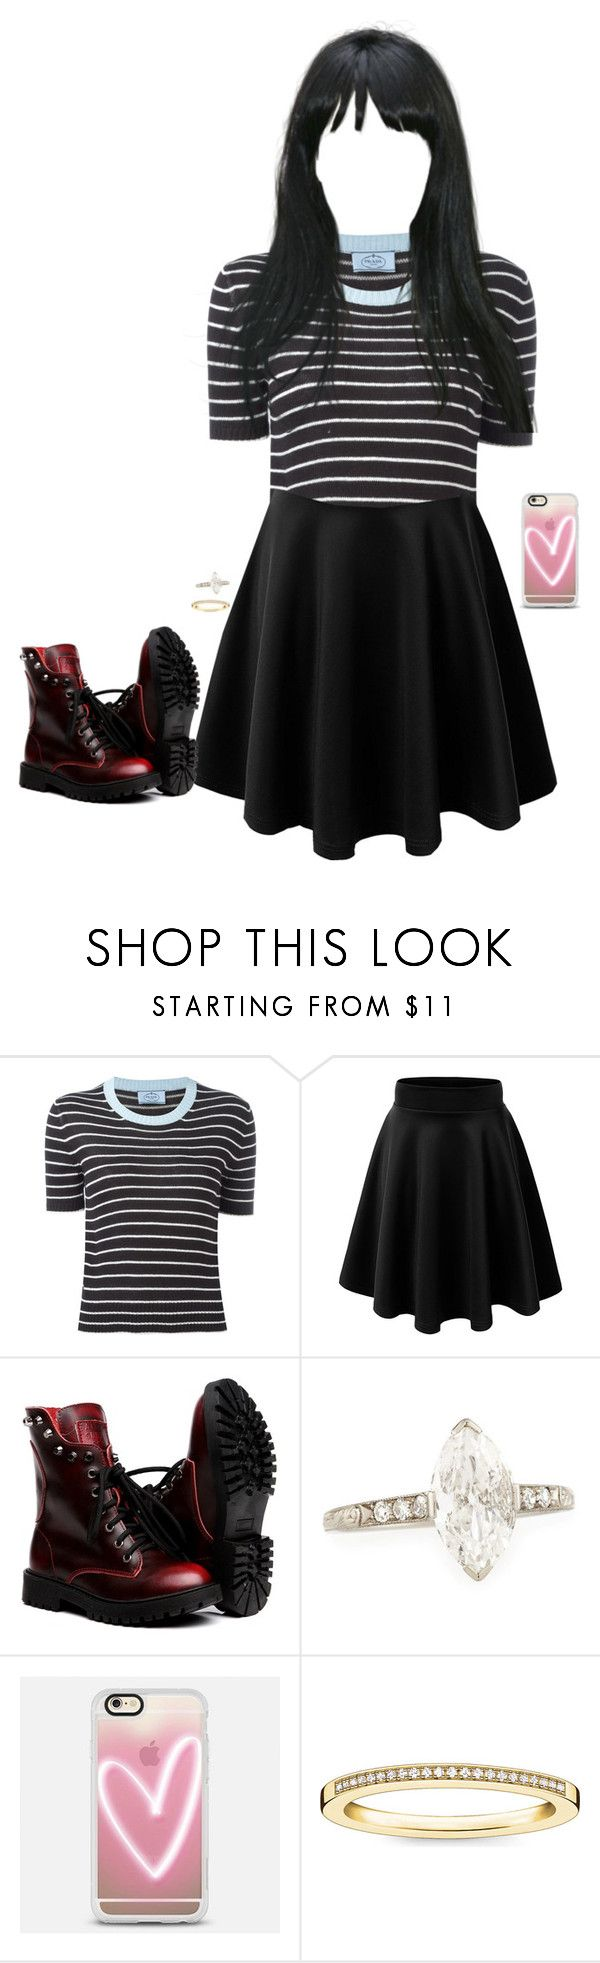 """""""Date"""" by lee-soohyun ❤ liked on Polyvore featuring Prada, Casetify and Thomas Sabo"""